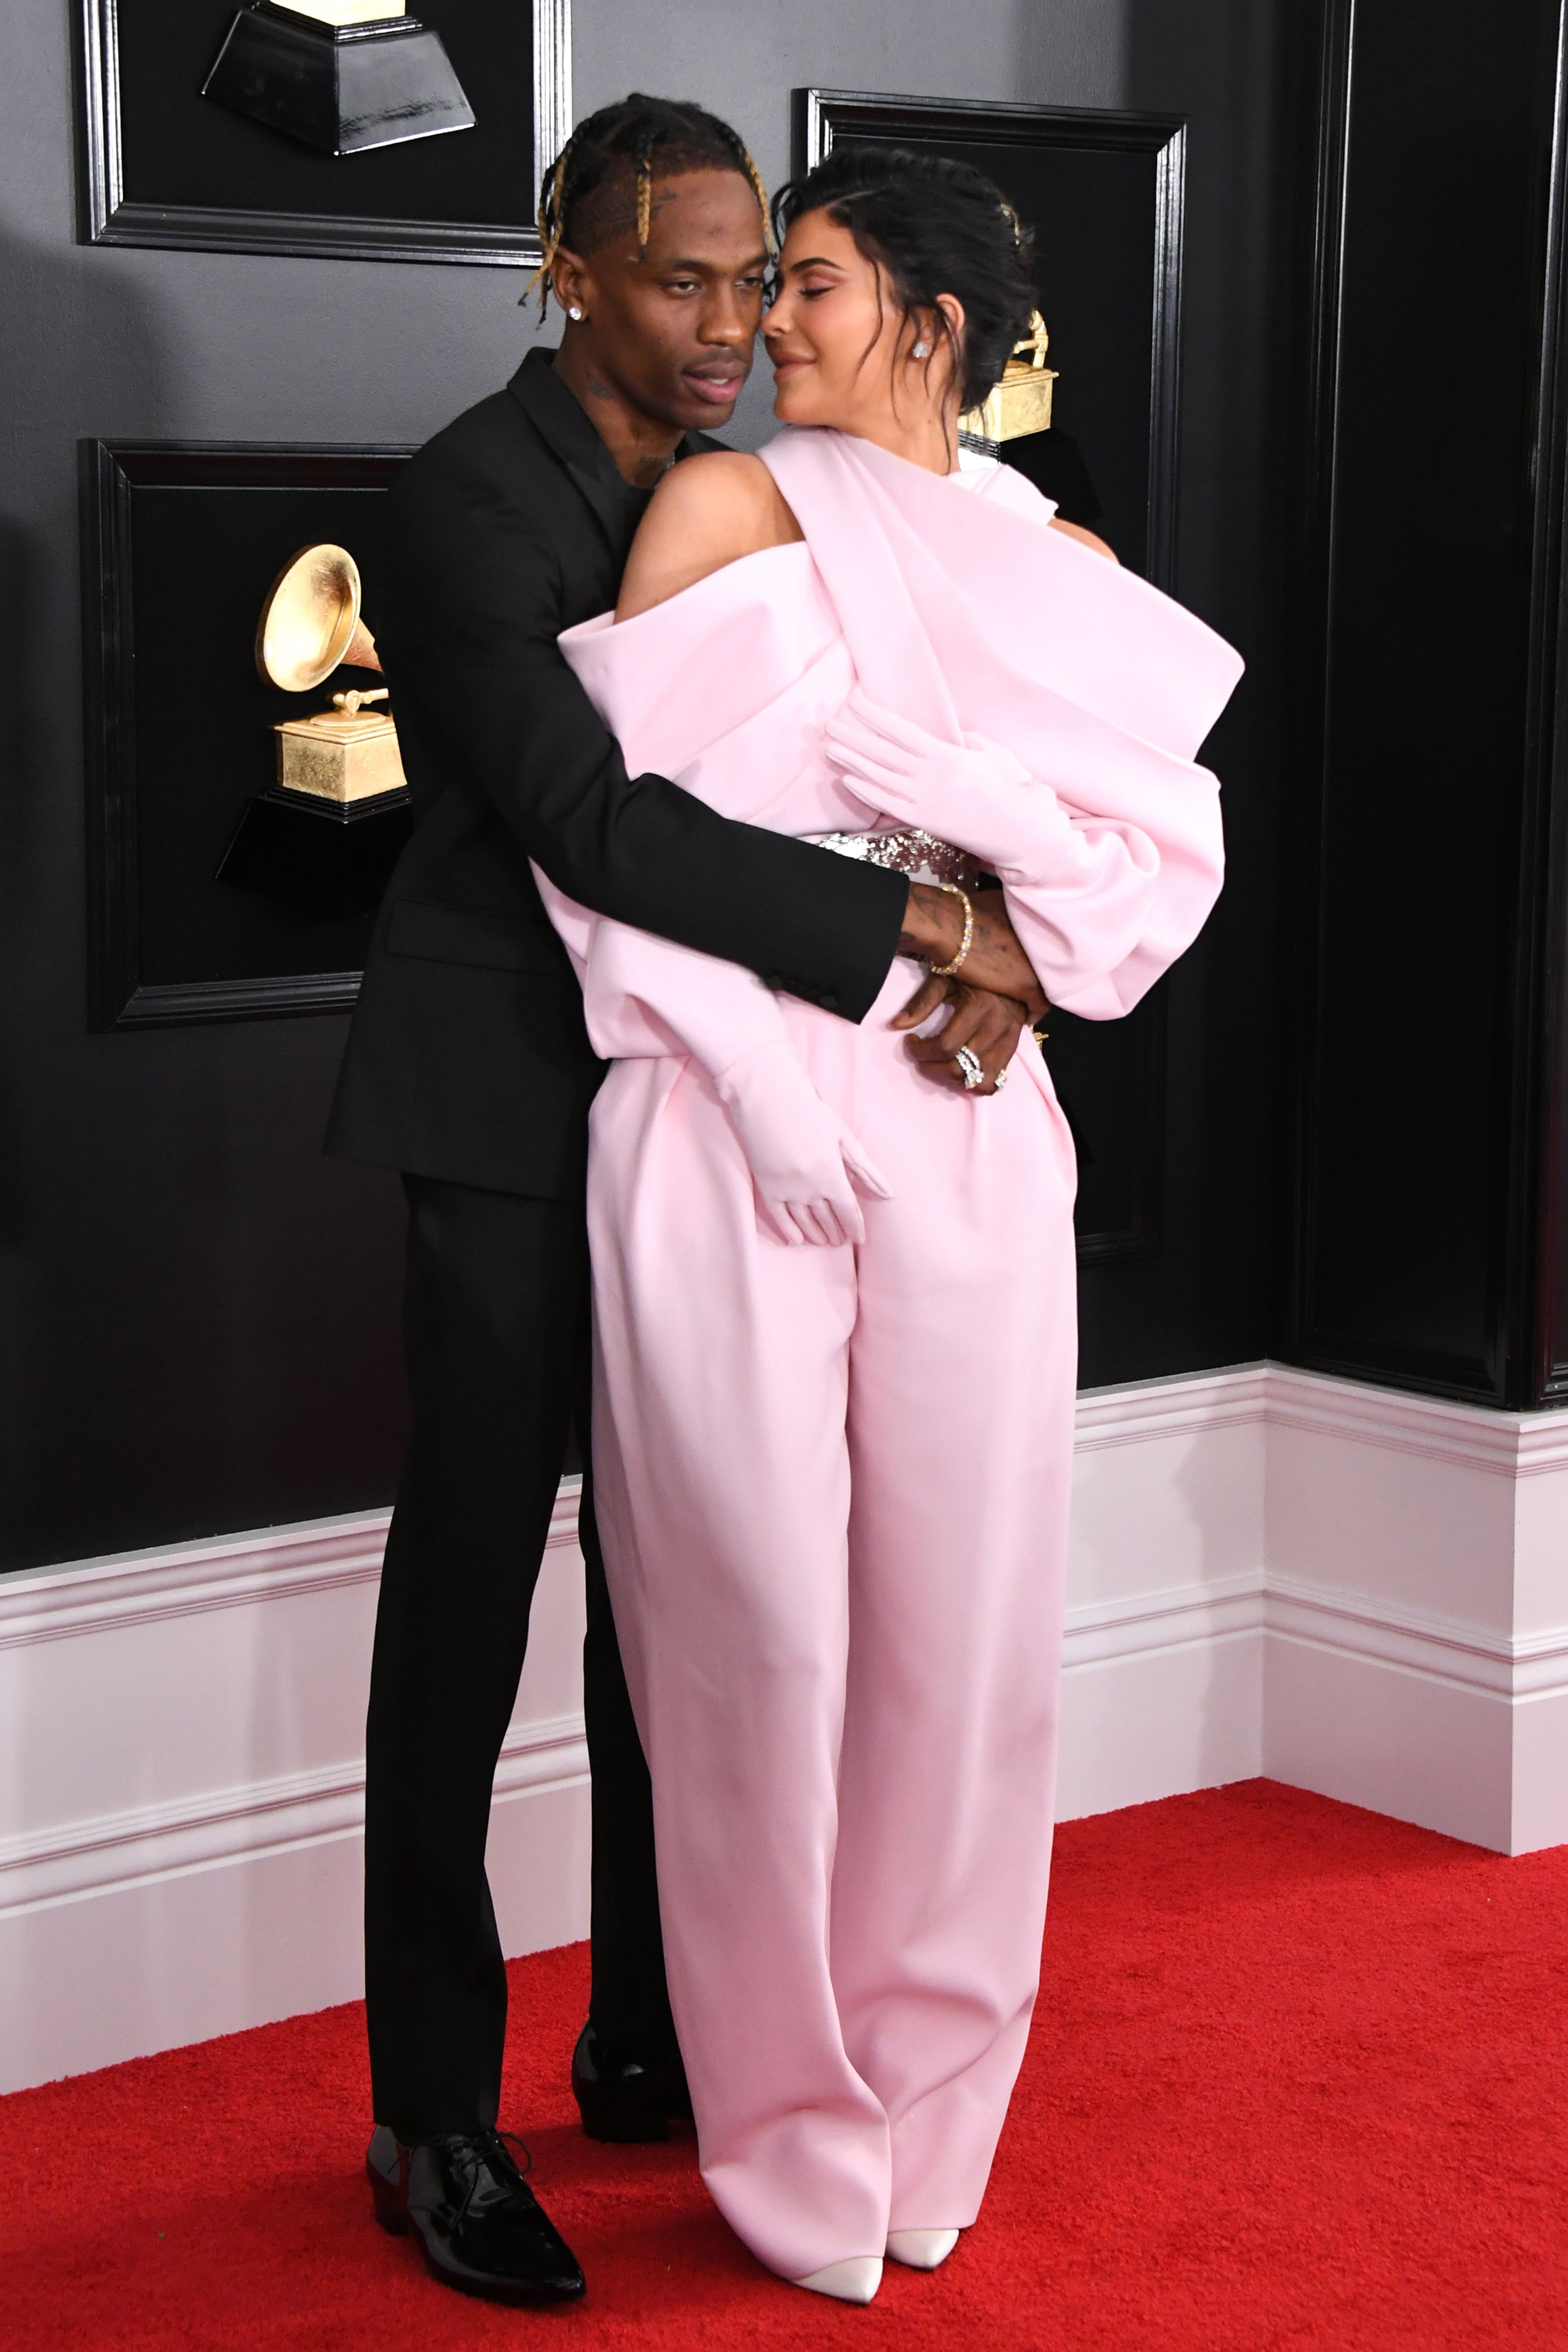 Travis Scott and Kylie Jenner during the 61st Annual Grammy Awards at Staples Center on February 10, 2019 in Los Angeles, California. | Source: Getty Images